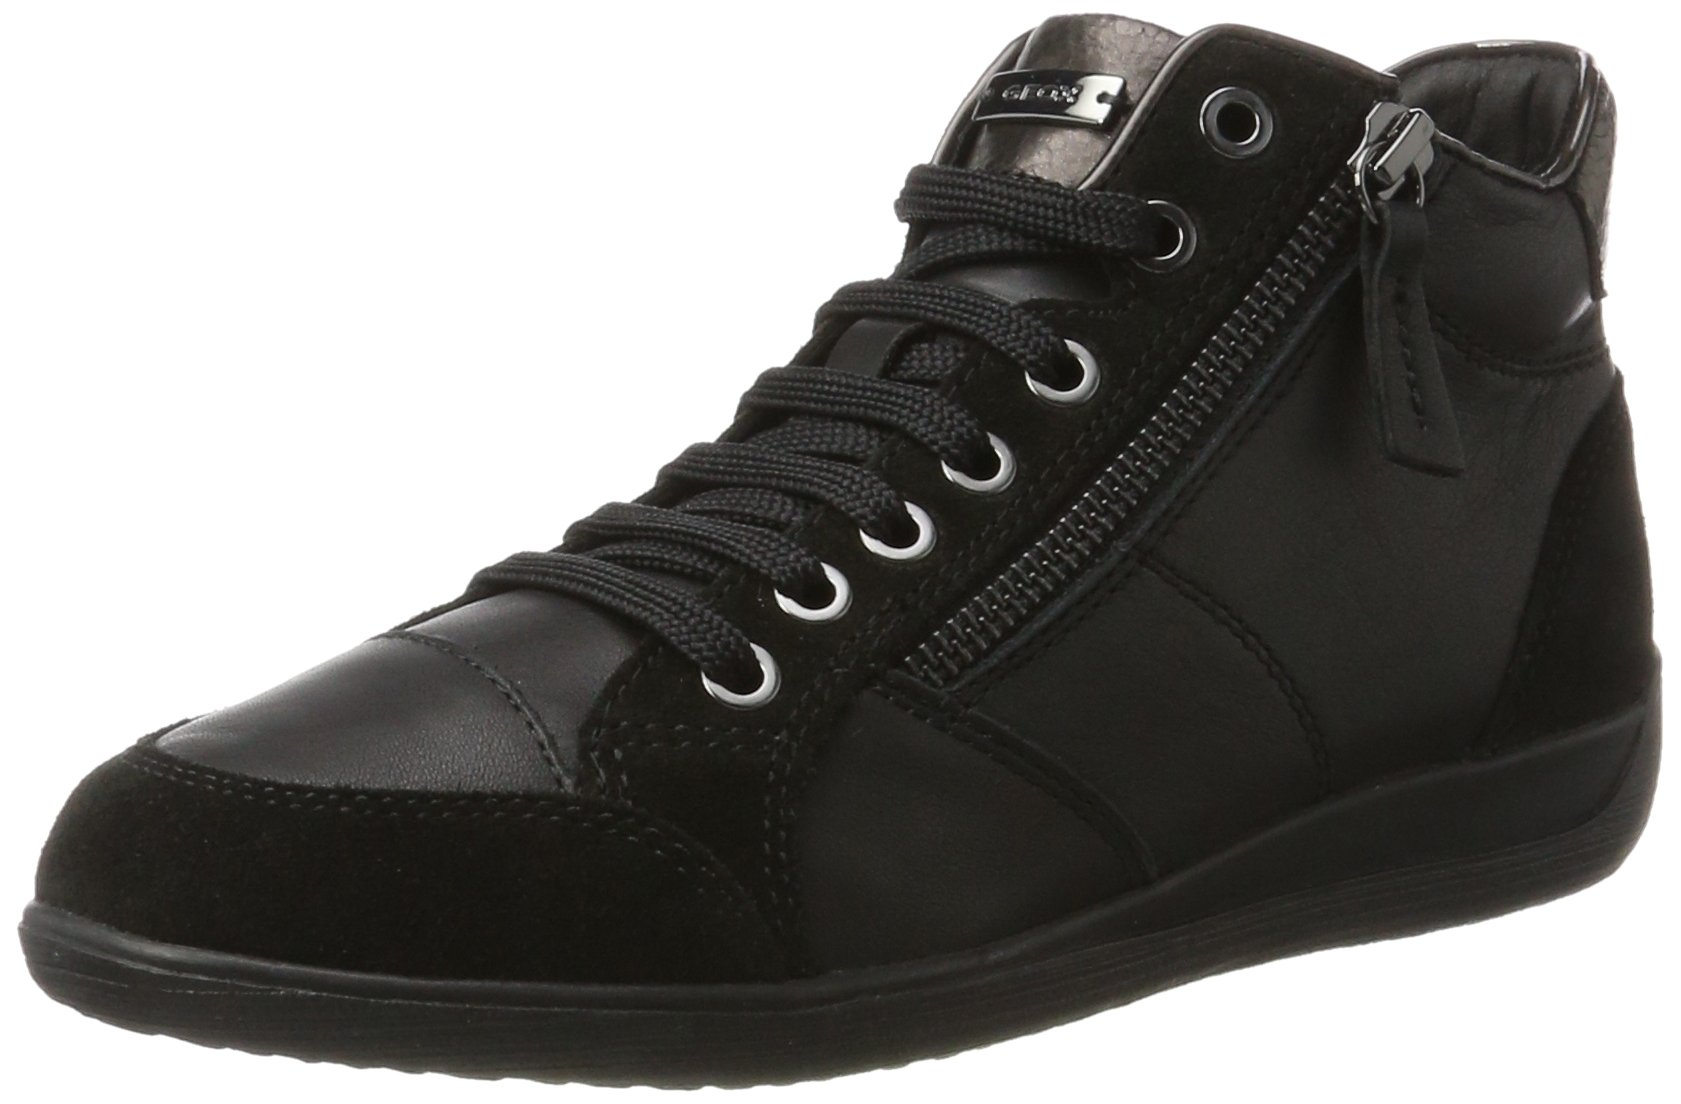 Geox D Myria C Womens Leather Sneakers / Shoes-Black-6